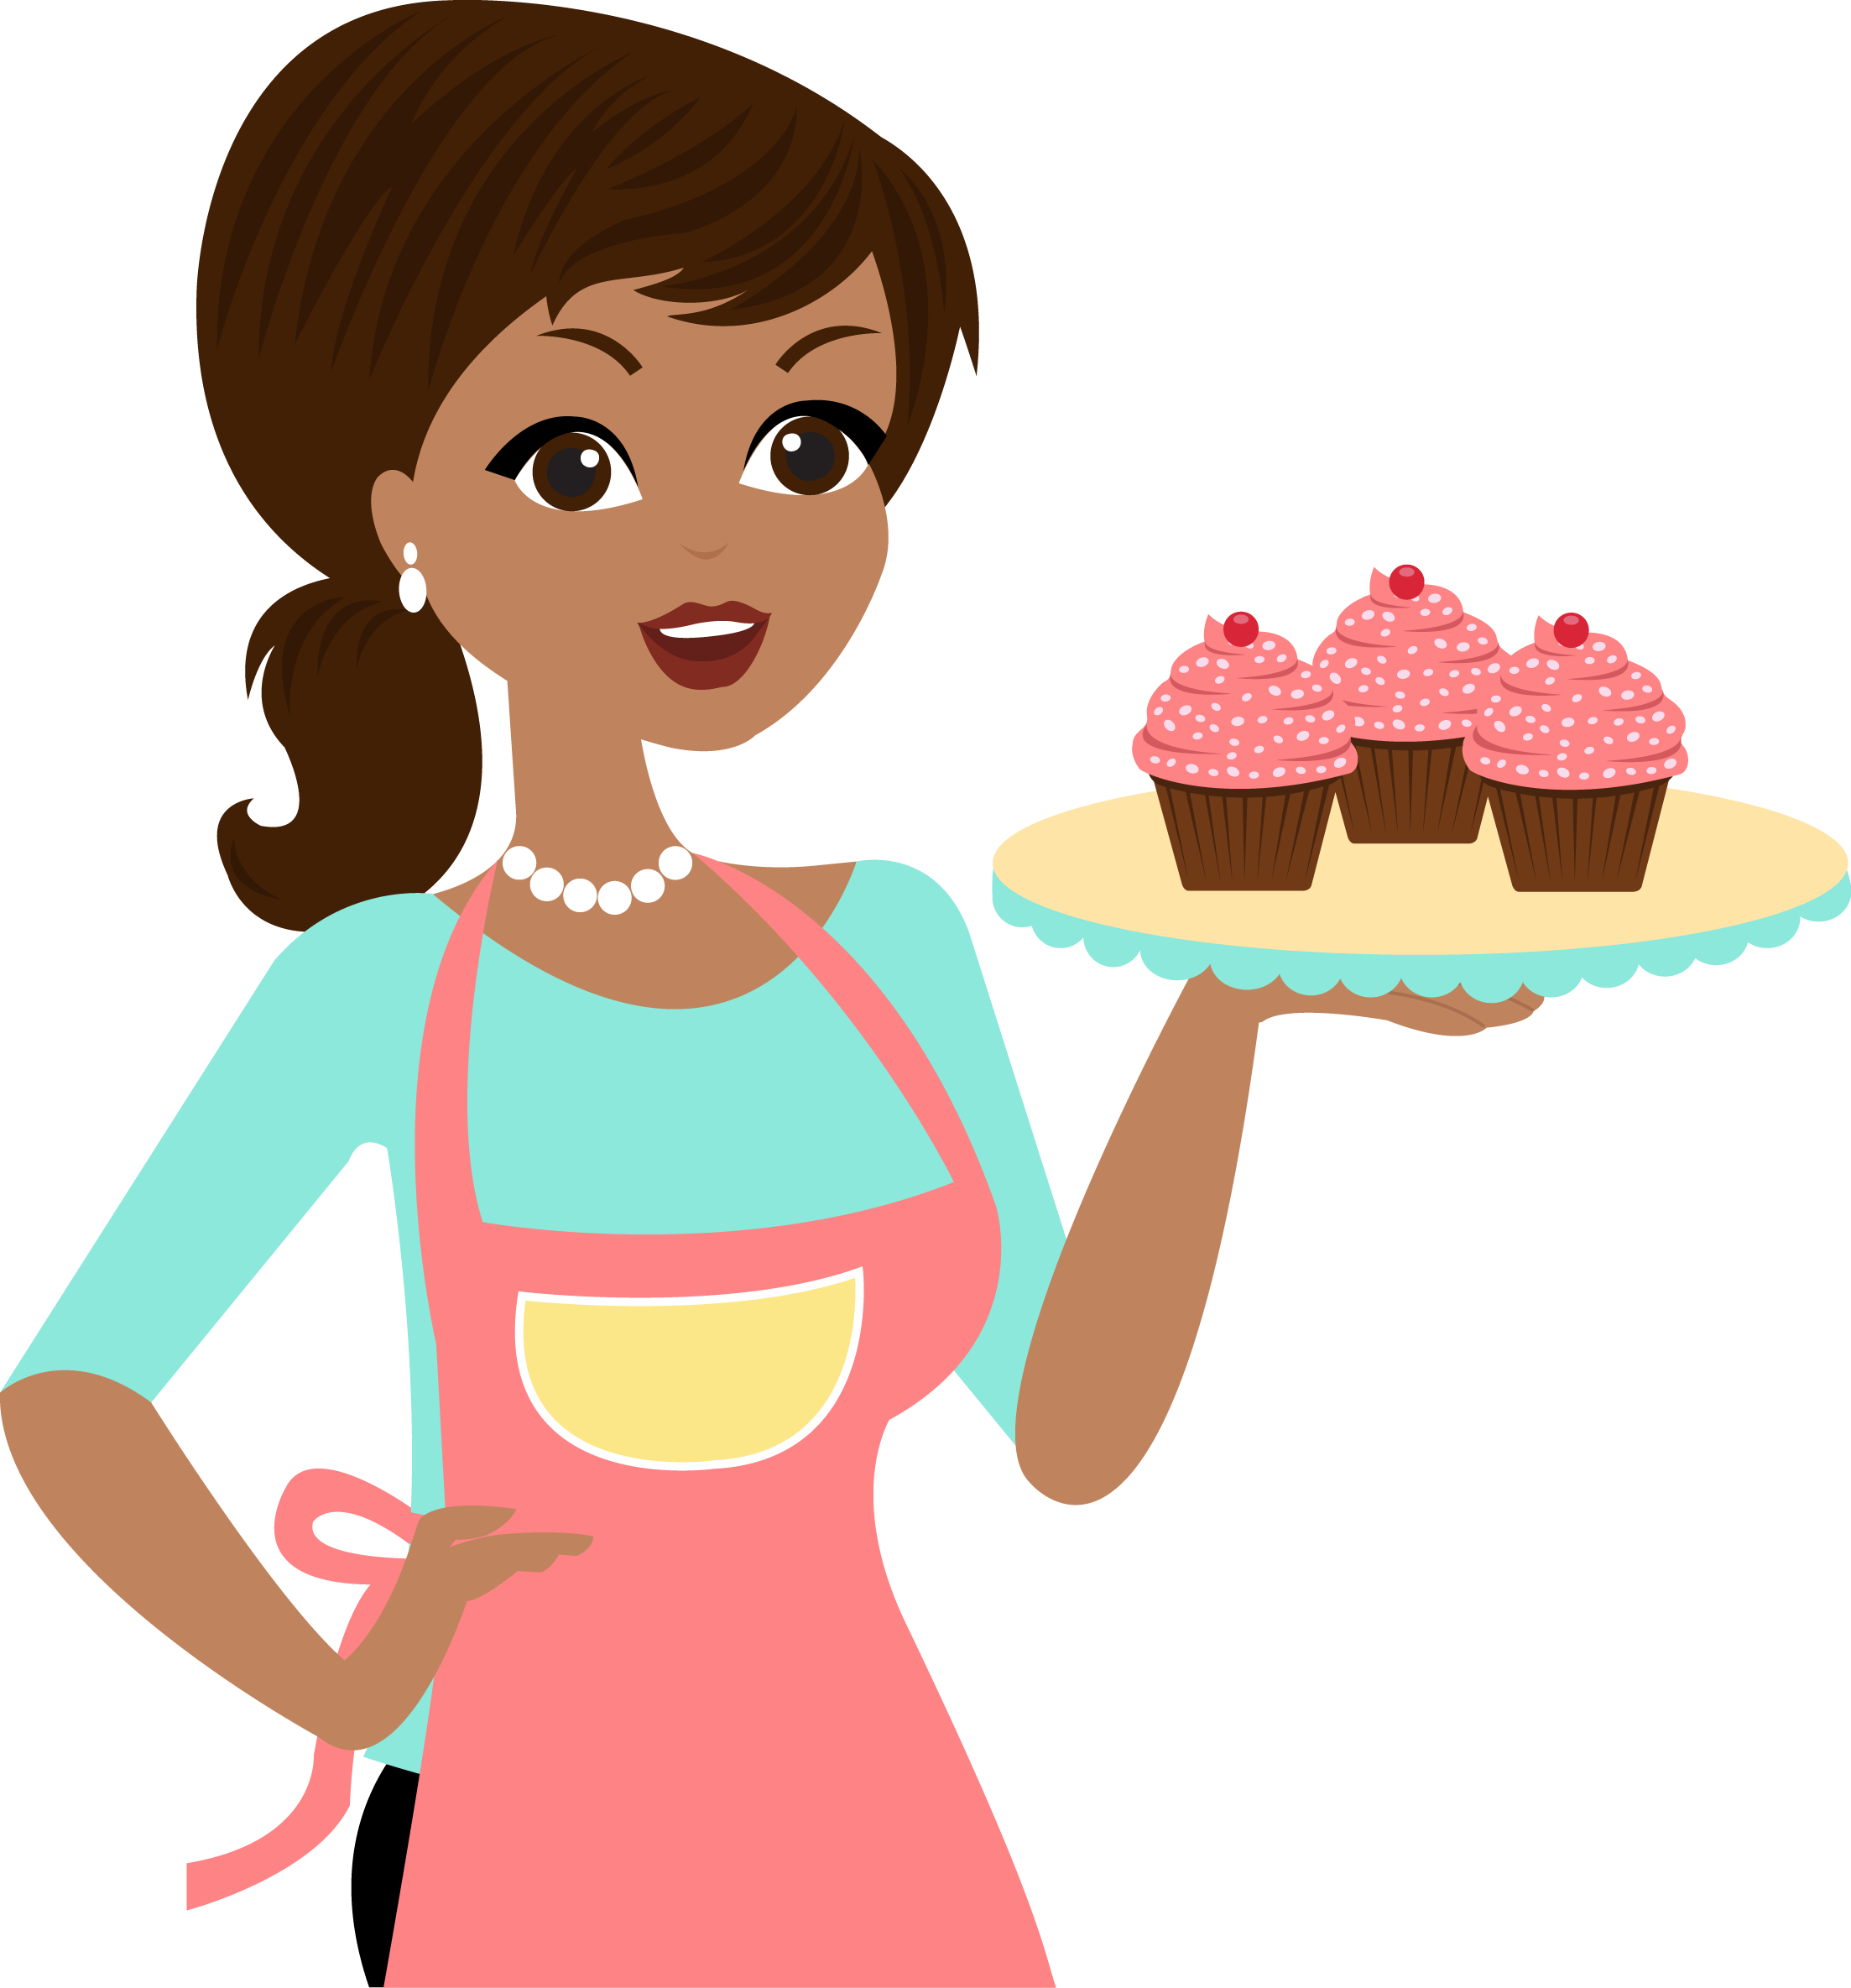 Png ponque pinterest apron. Muffins clipart mom cooking